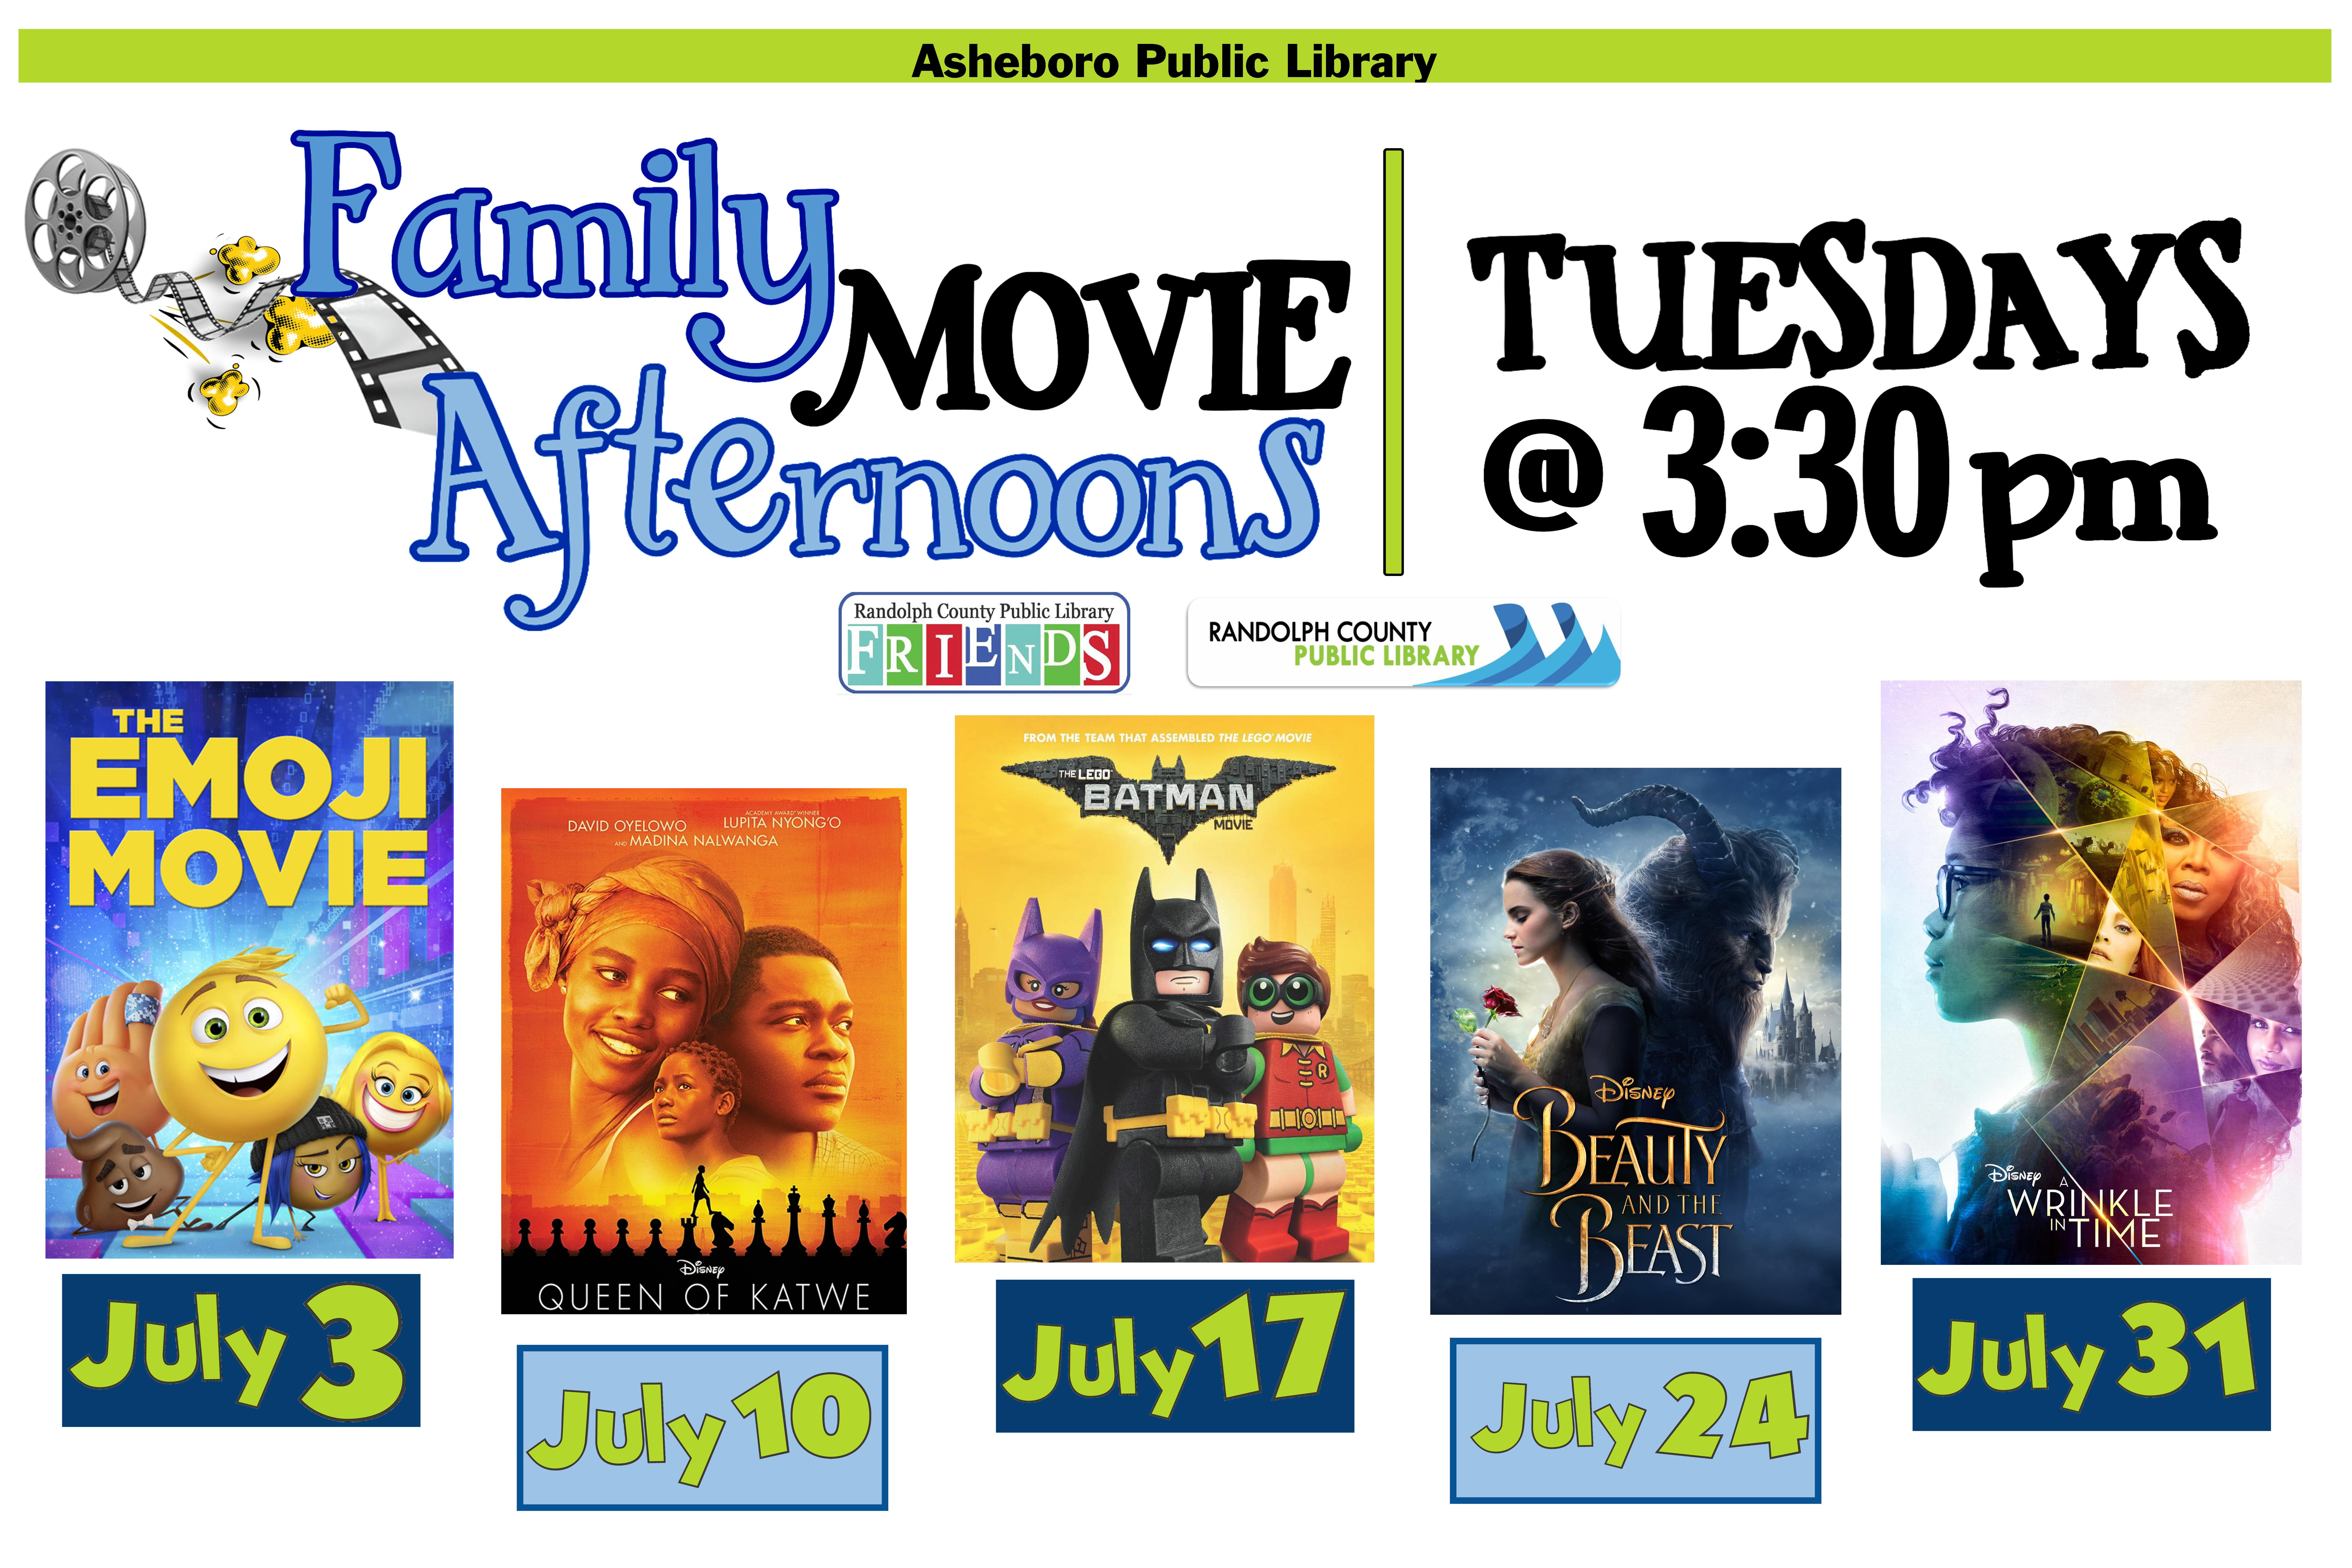 Come enjoy FREE movies in July at the Asheboro Library!